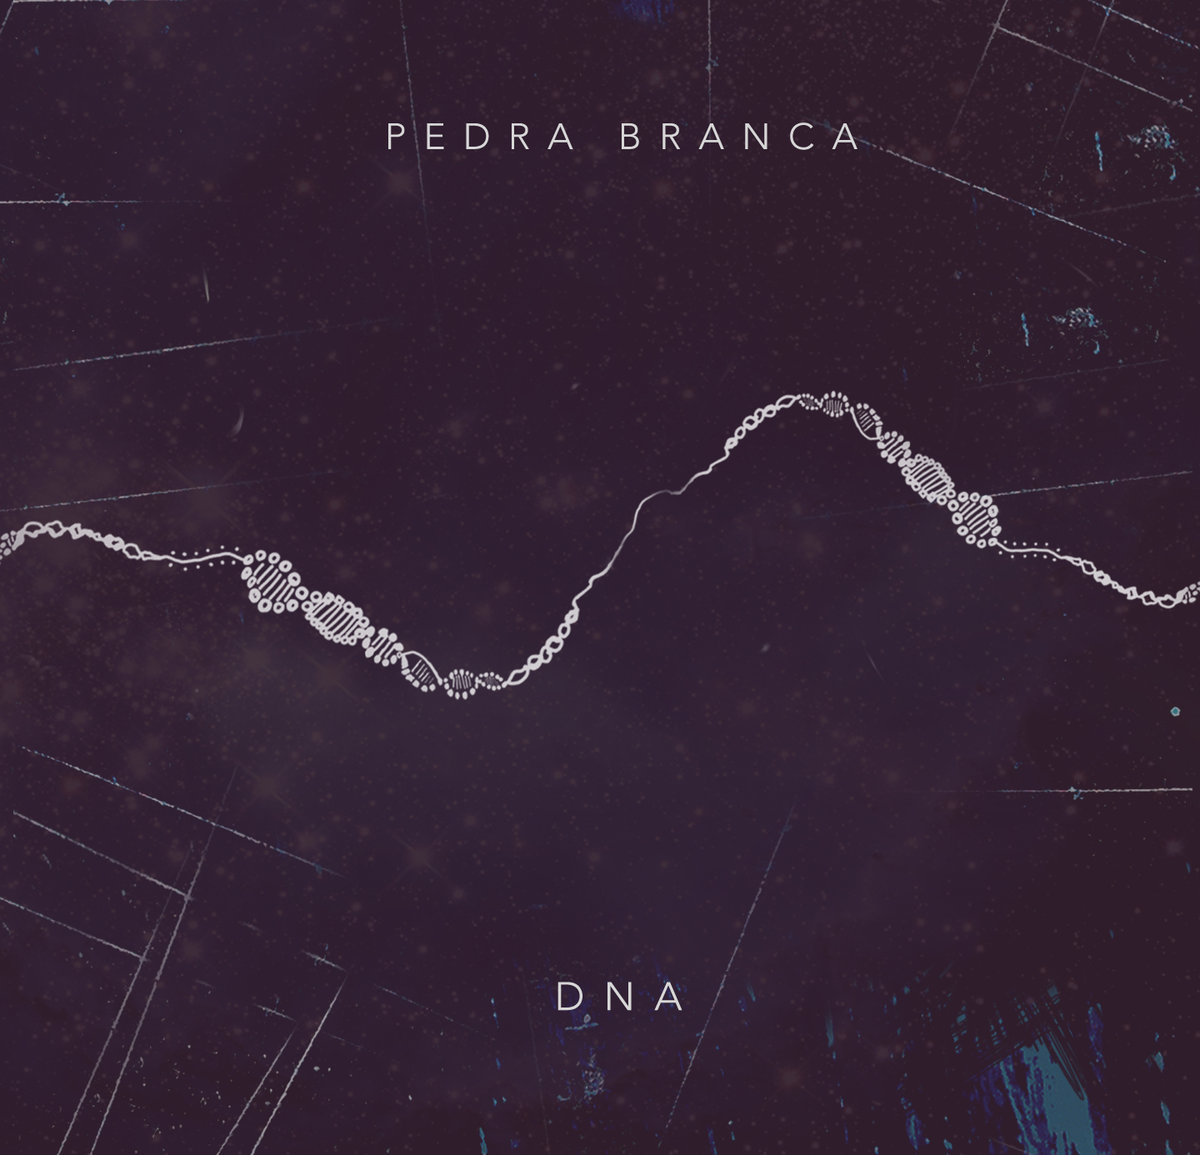 Pedra Branca - Lullaby @ 'DNA' album (brazil, electronic)